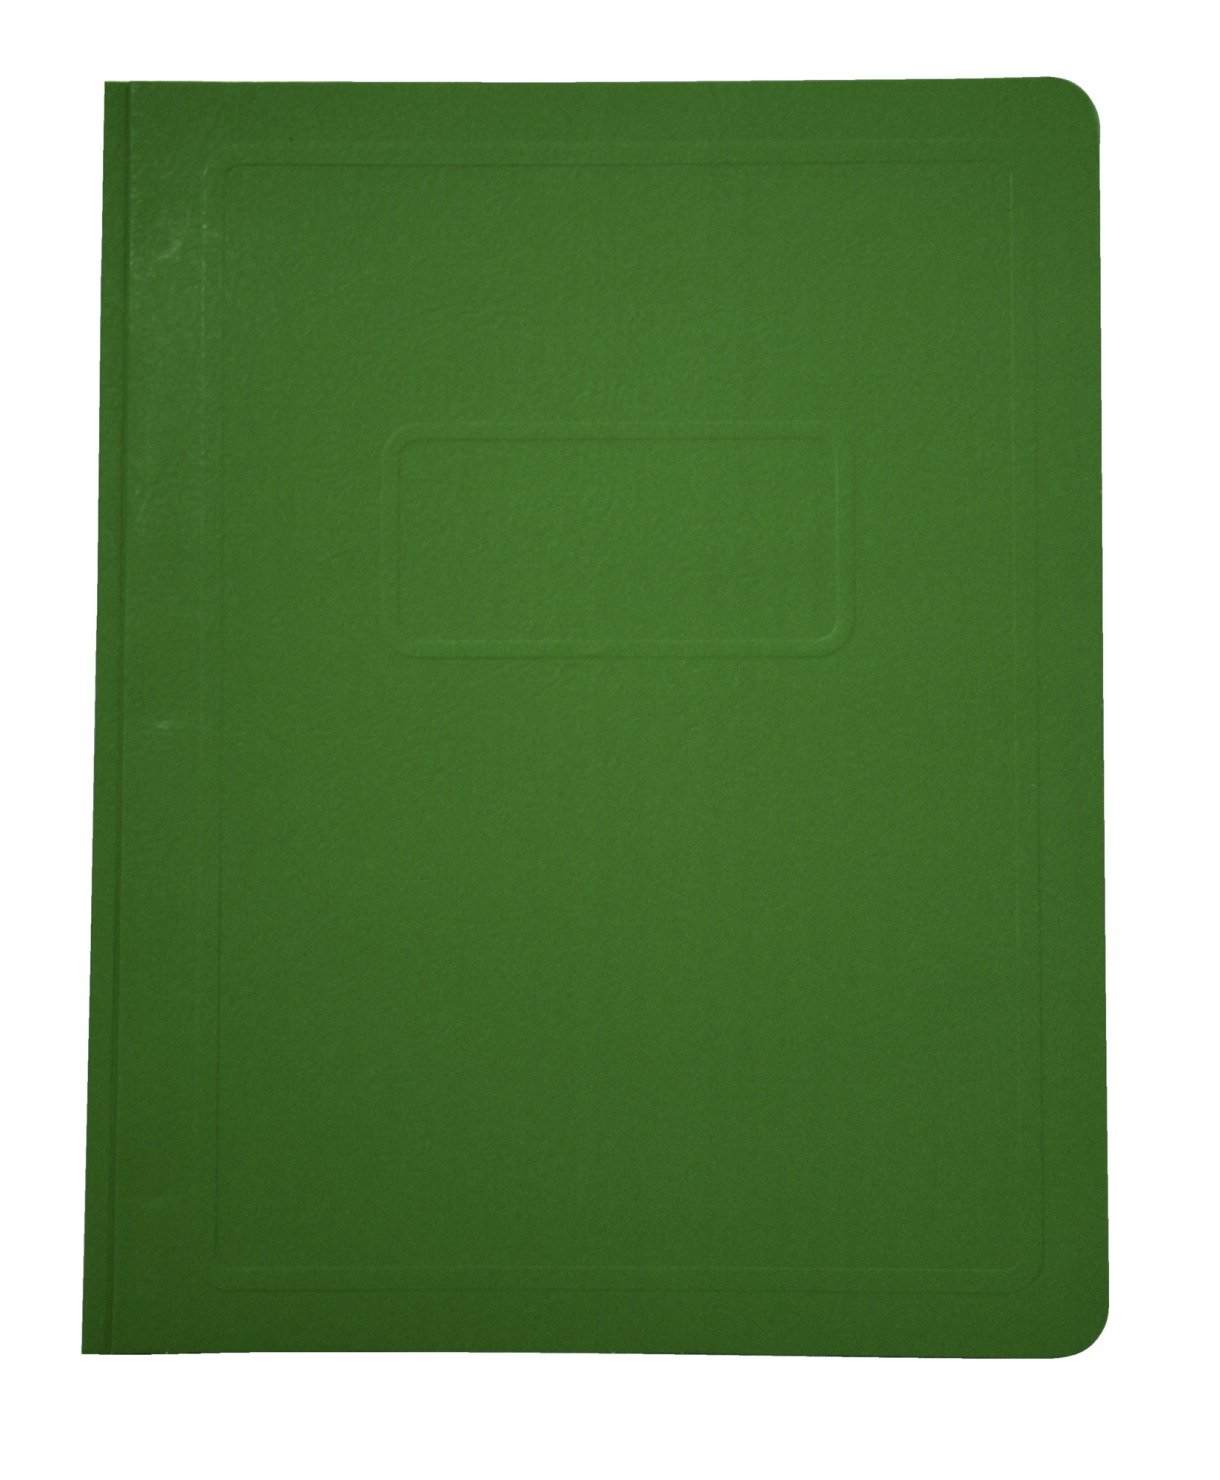 School Smart Report Cover with 3 Hole Fastener Insert - 8 1/2 x 11 inch - Pack of 25 - Light Green